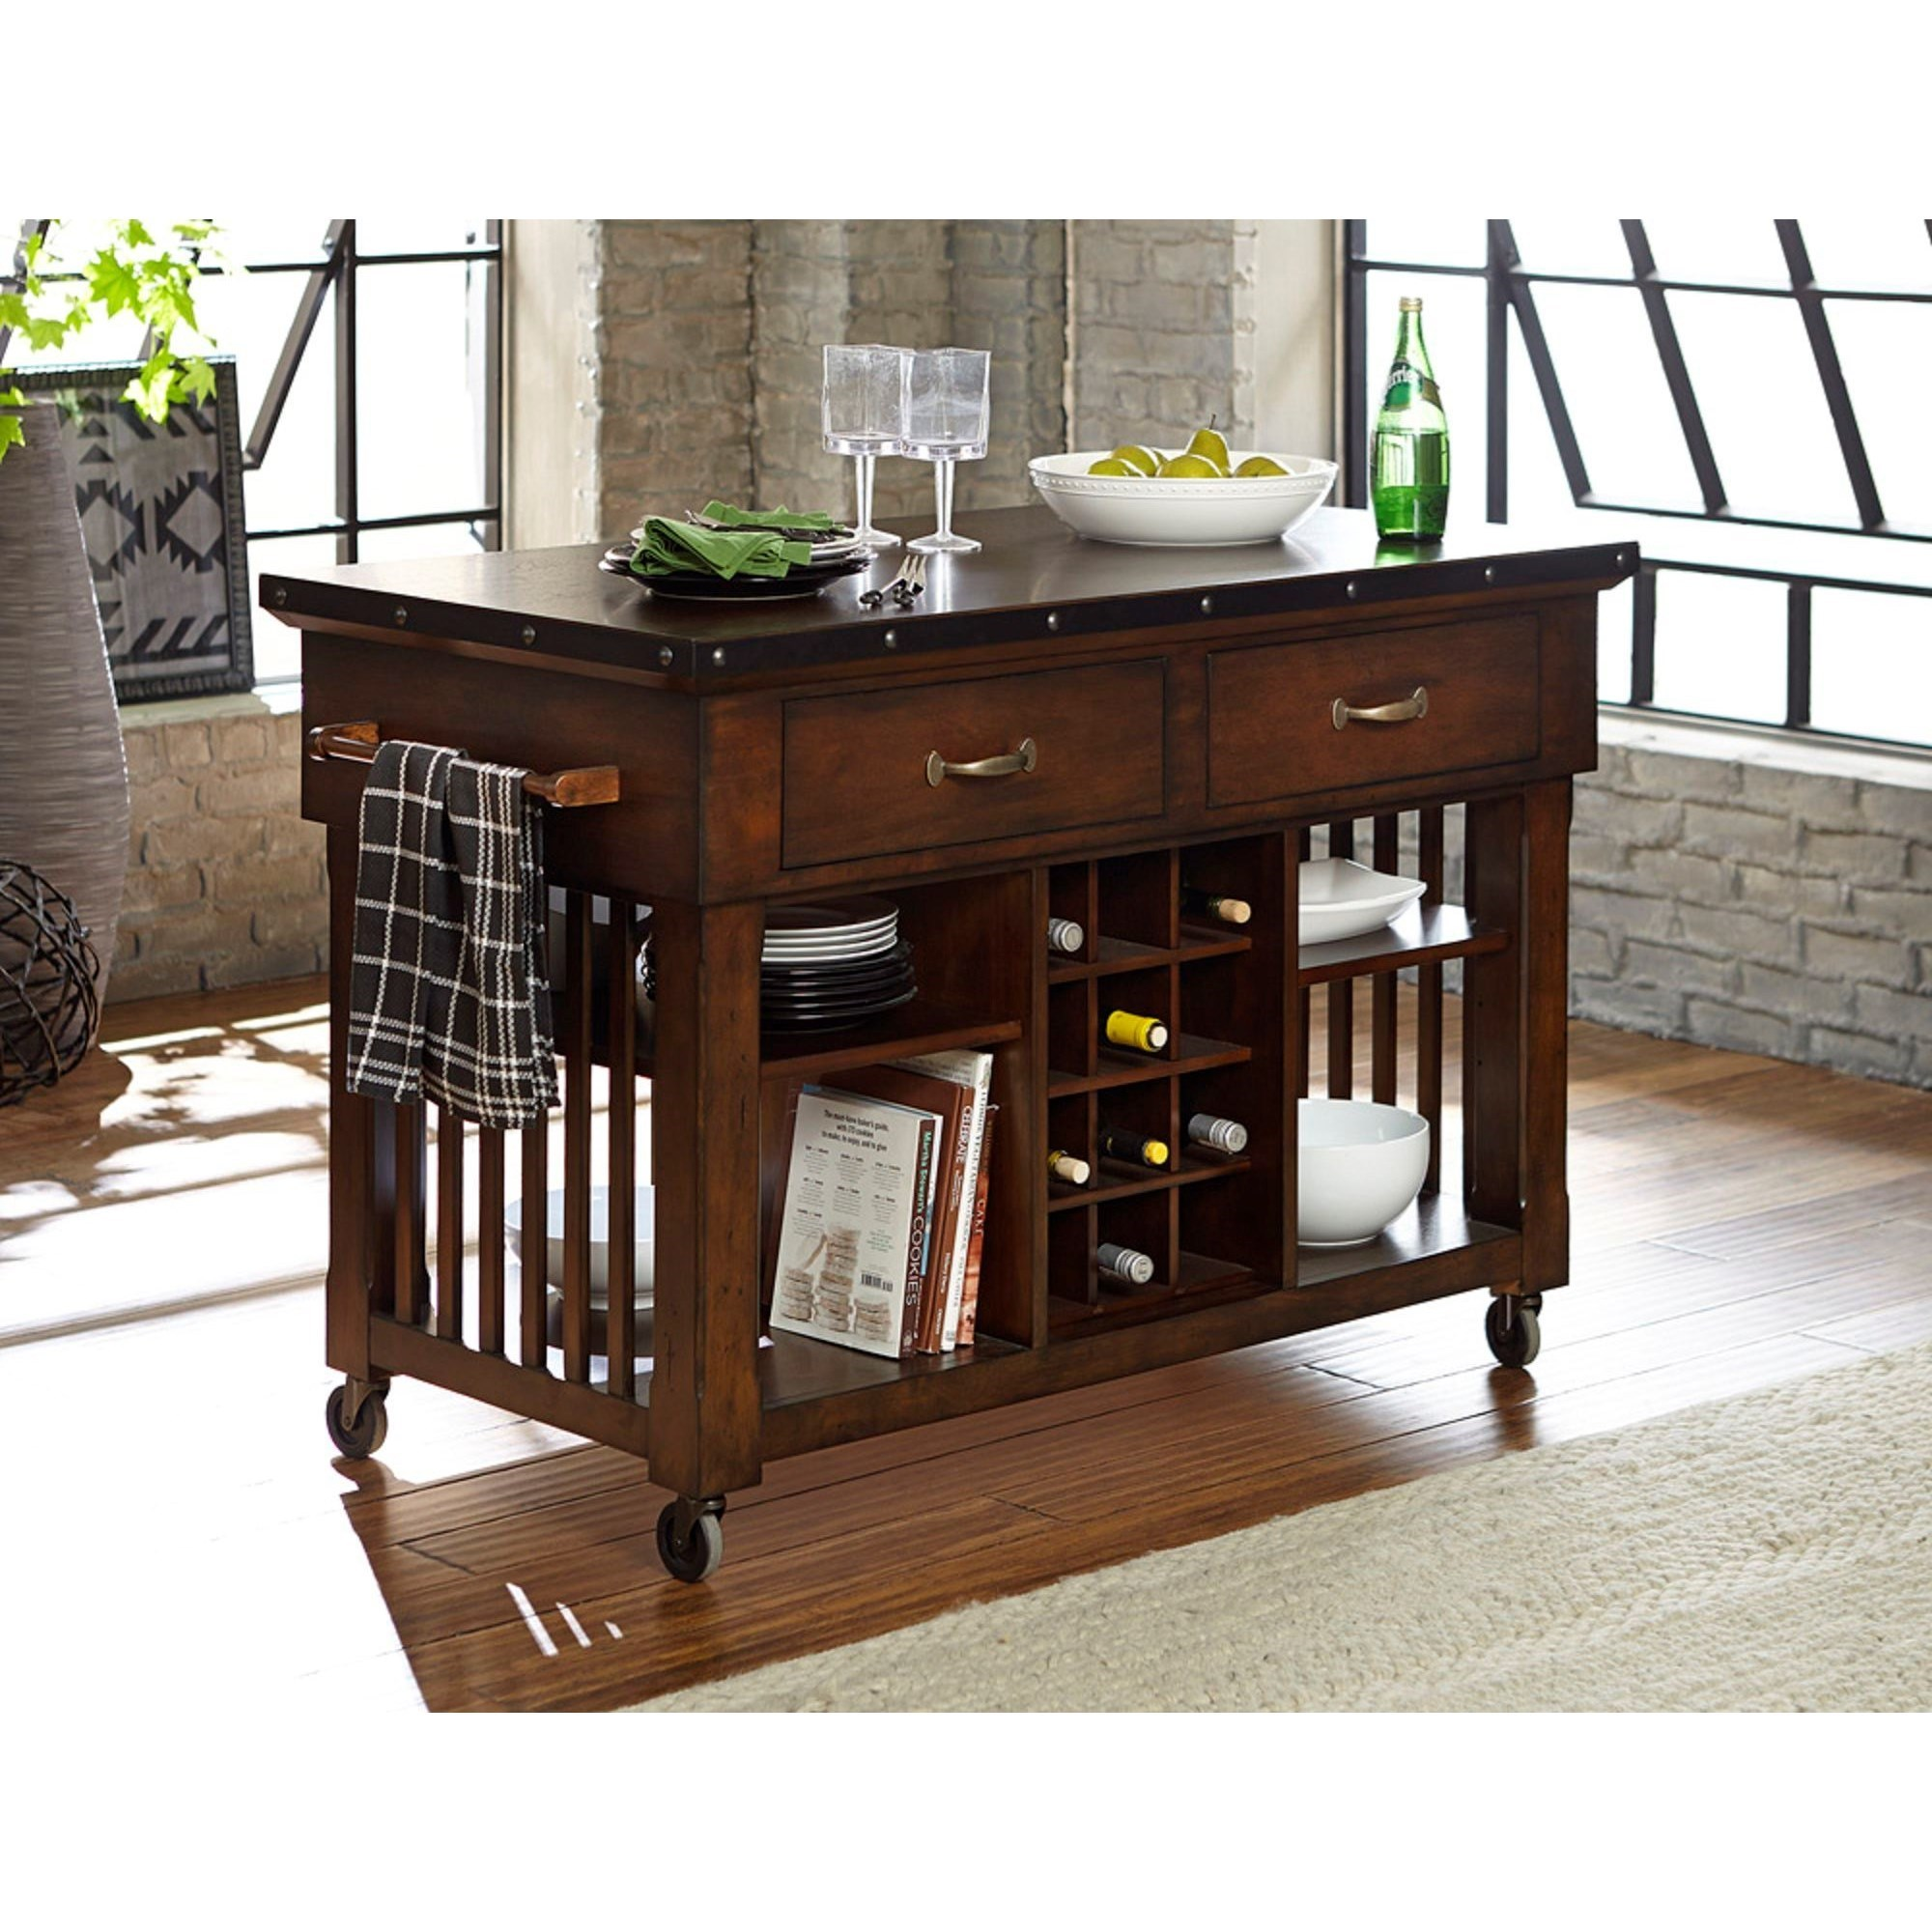 Homelegance Schleiger Industrial Kitchen Island Cart With Metal Trim And  Decorative Nail Heads